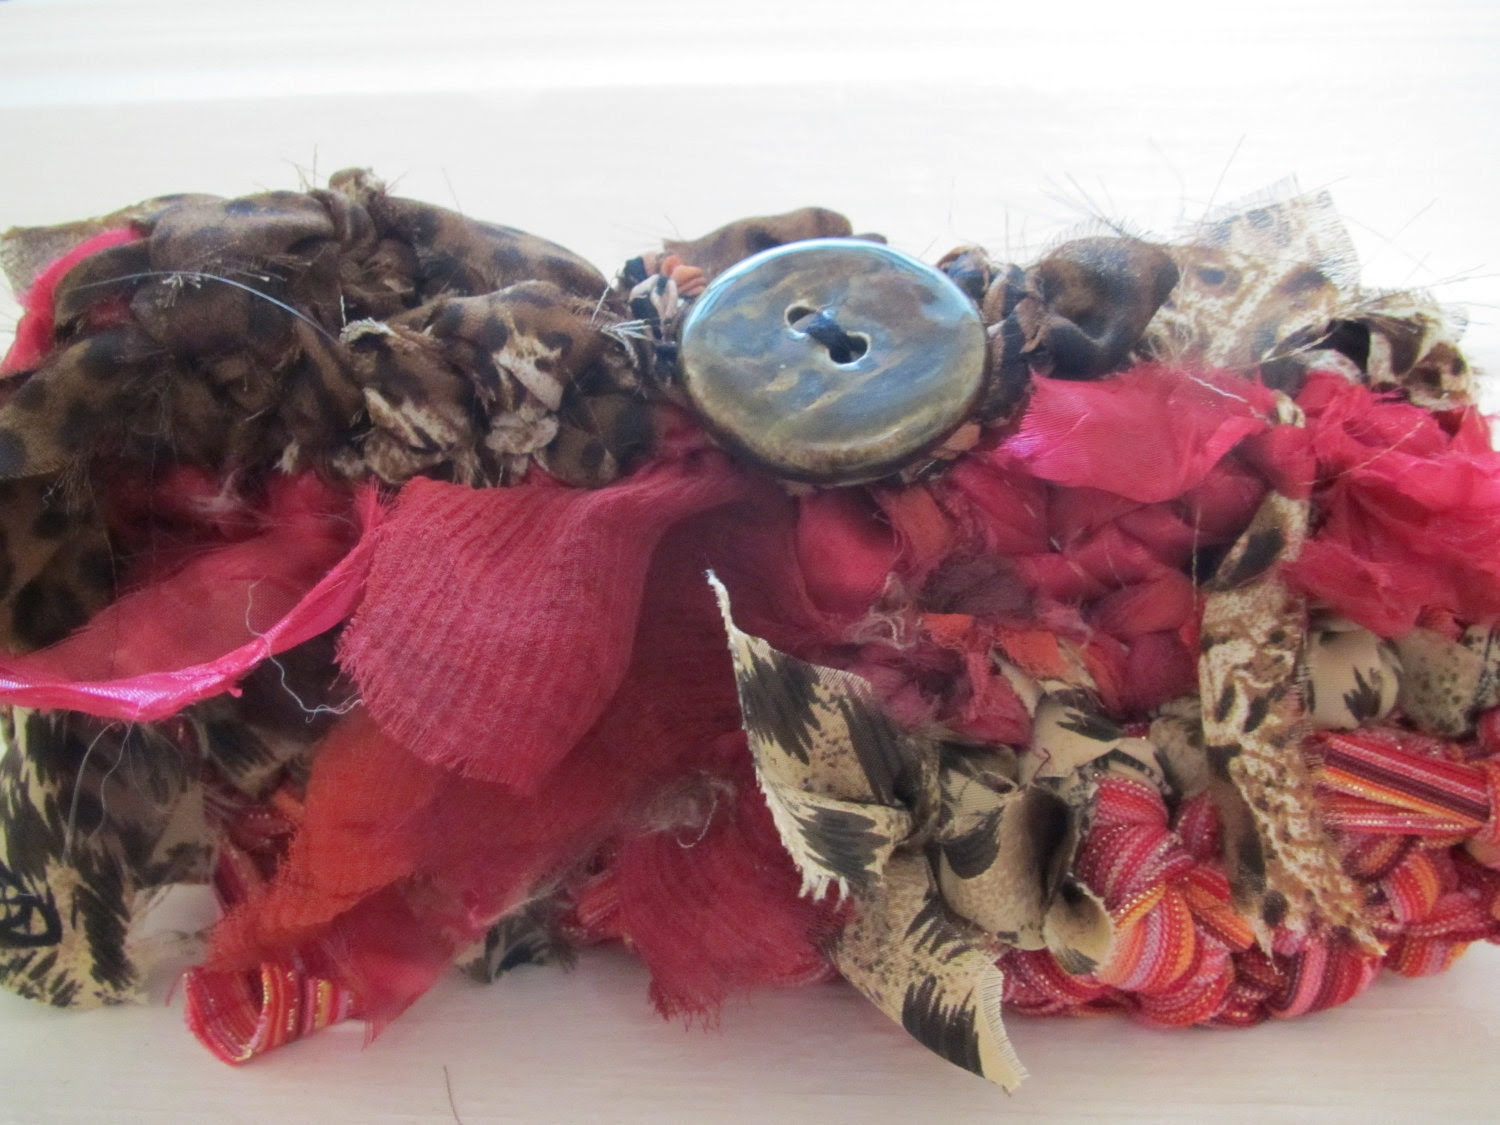 """One of a Kind """"Mini Clutch"""" style TeeBag, Pinks and Browns with Animal Print created from recycled apparel."""